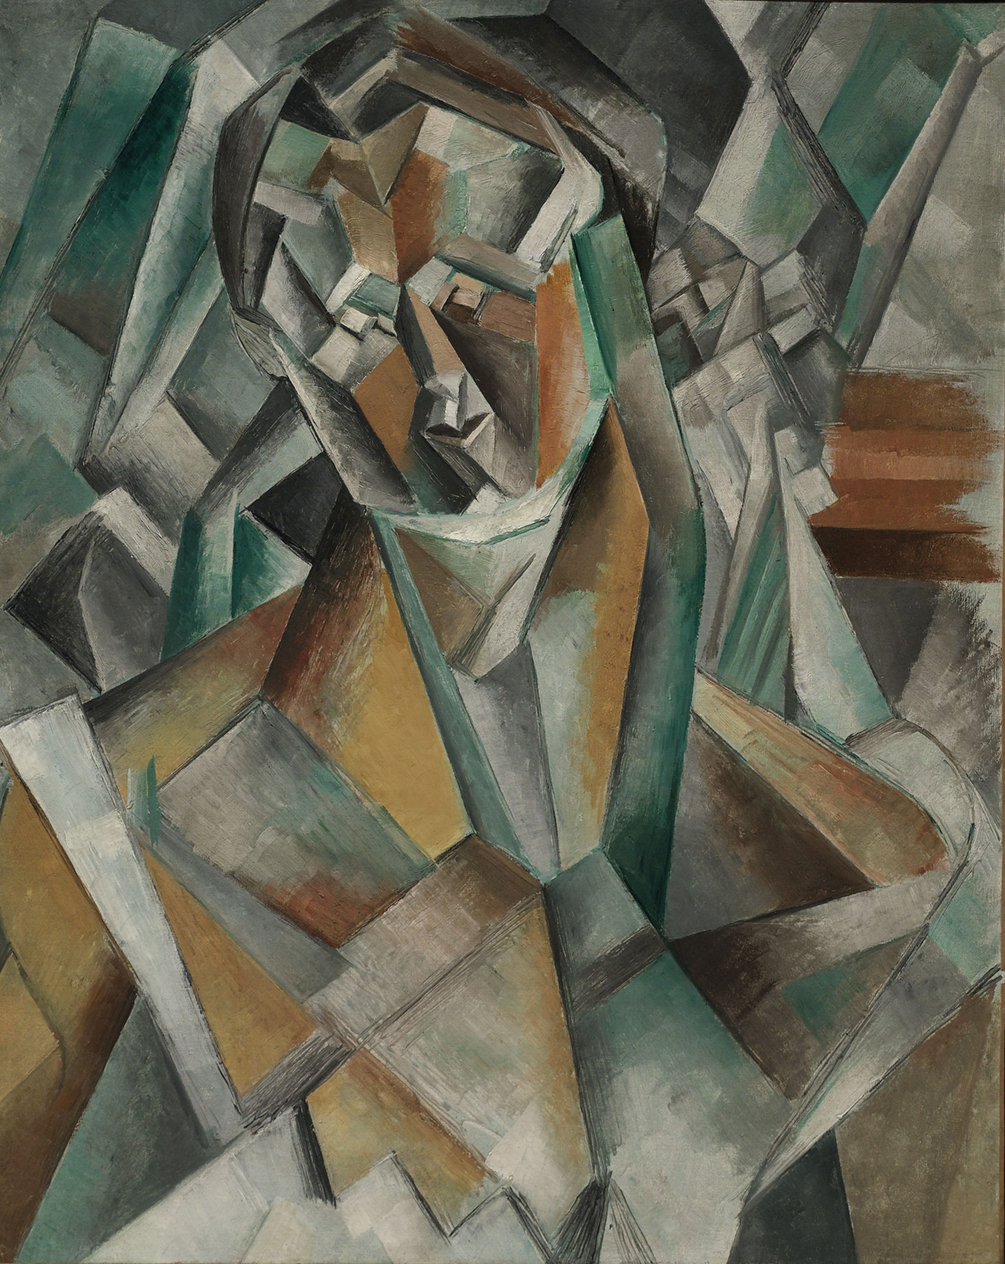 cubism a form of art Important cubism terms, pieces, artists, and other important art forms that came after cubism learn with flashcards, games, and more — for free.